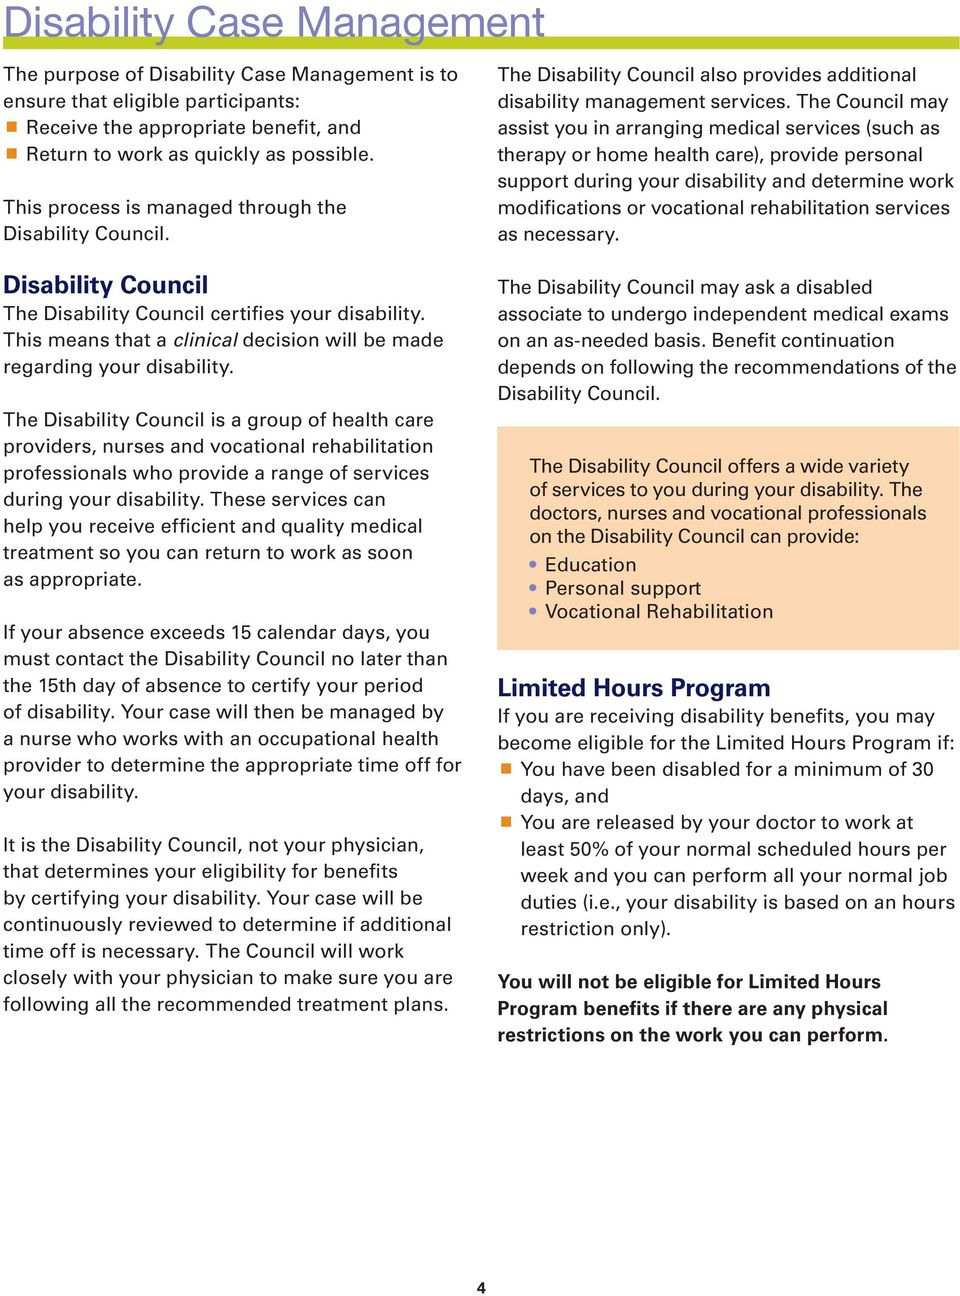 The Disability Council is a group of health care providers, nurses and vocational rehabilitation professionals who provide a range of services during your disability.